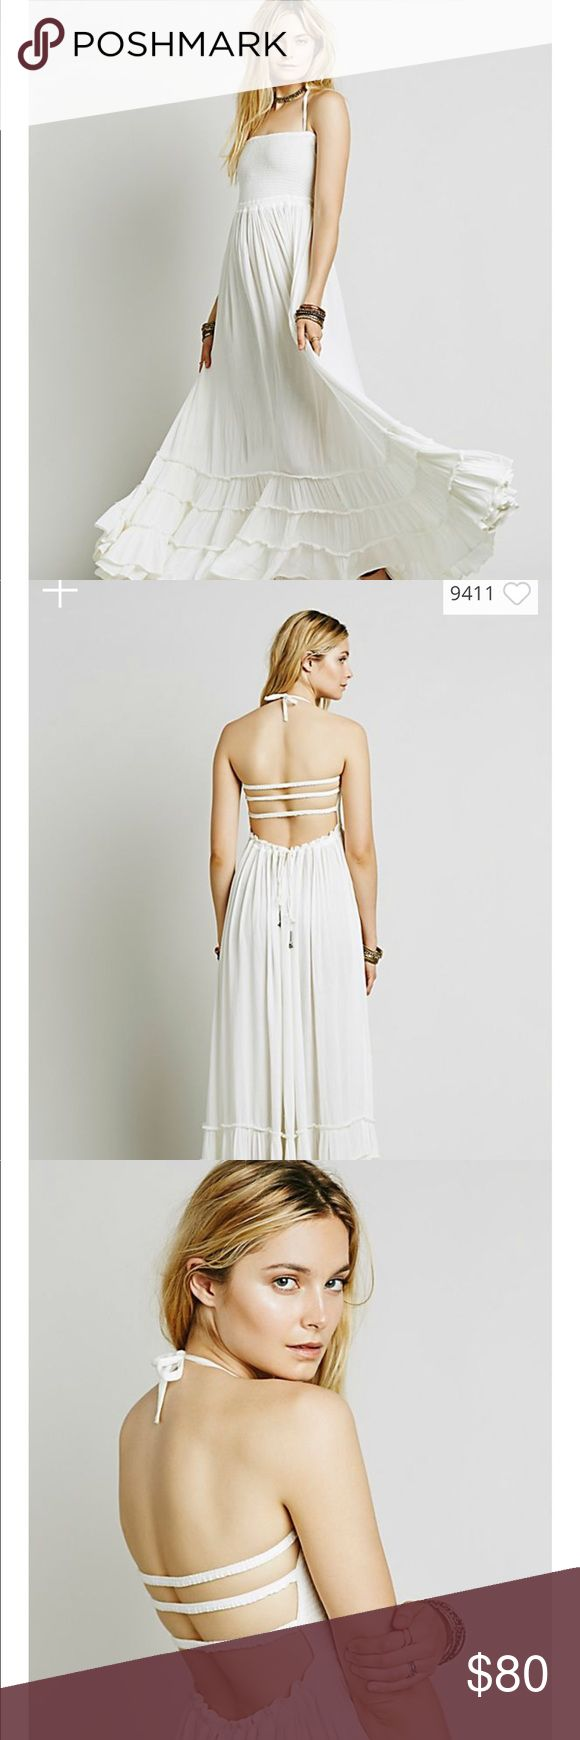 Free People Extratropical Maxi Dress Amazing flowy maxi dress in a neutral sand color. Only worn once for an occasion. Only size L left online! Free People Dresses Maxi